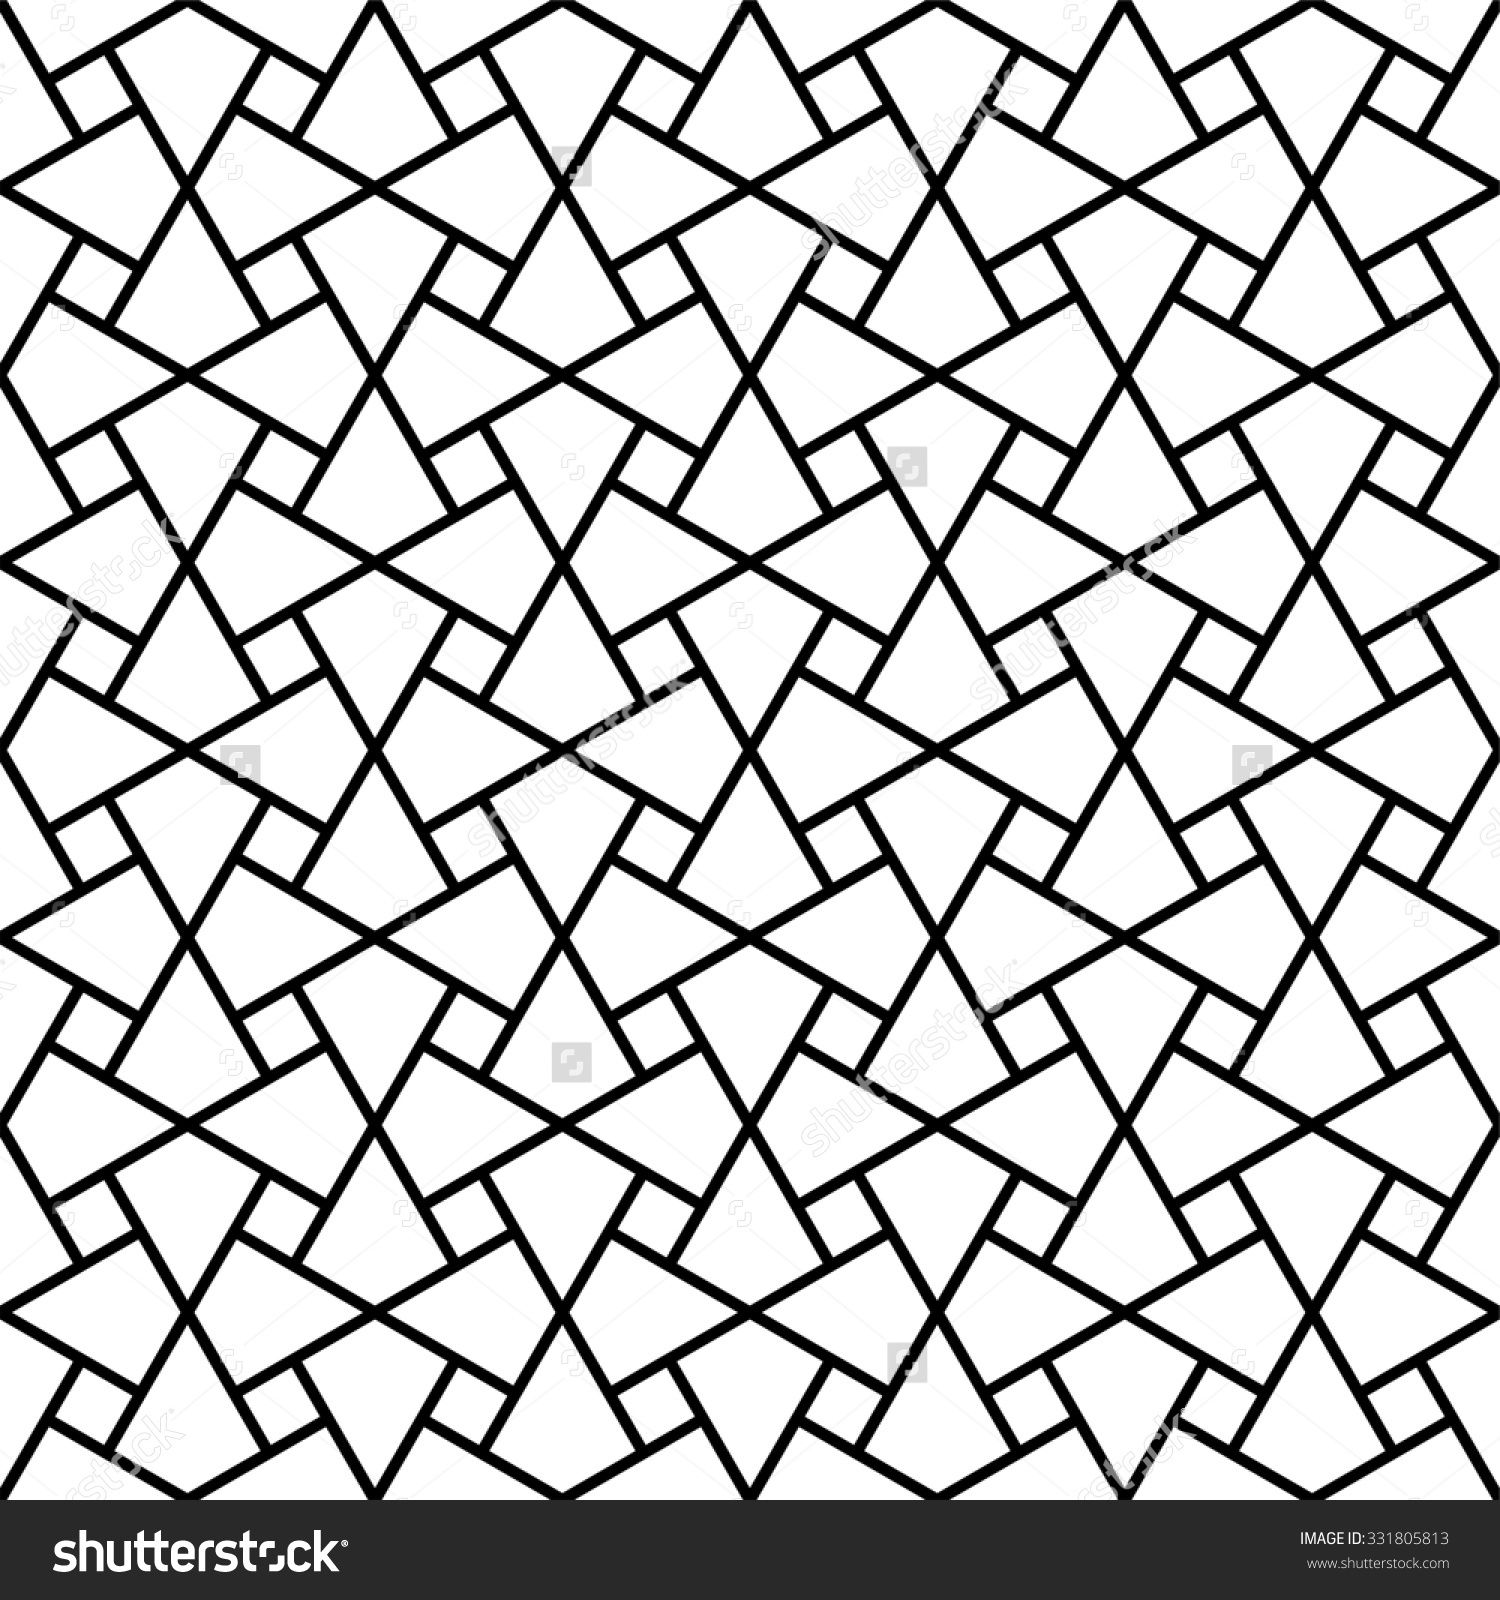 Resultado de imagen para paisley pattern vector free download ... for Modern Arabic Pattern Vector  155sfw